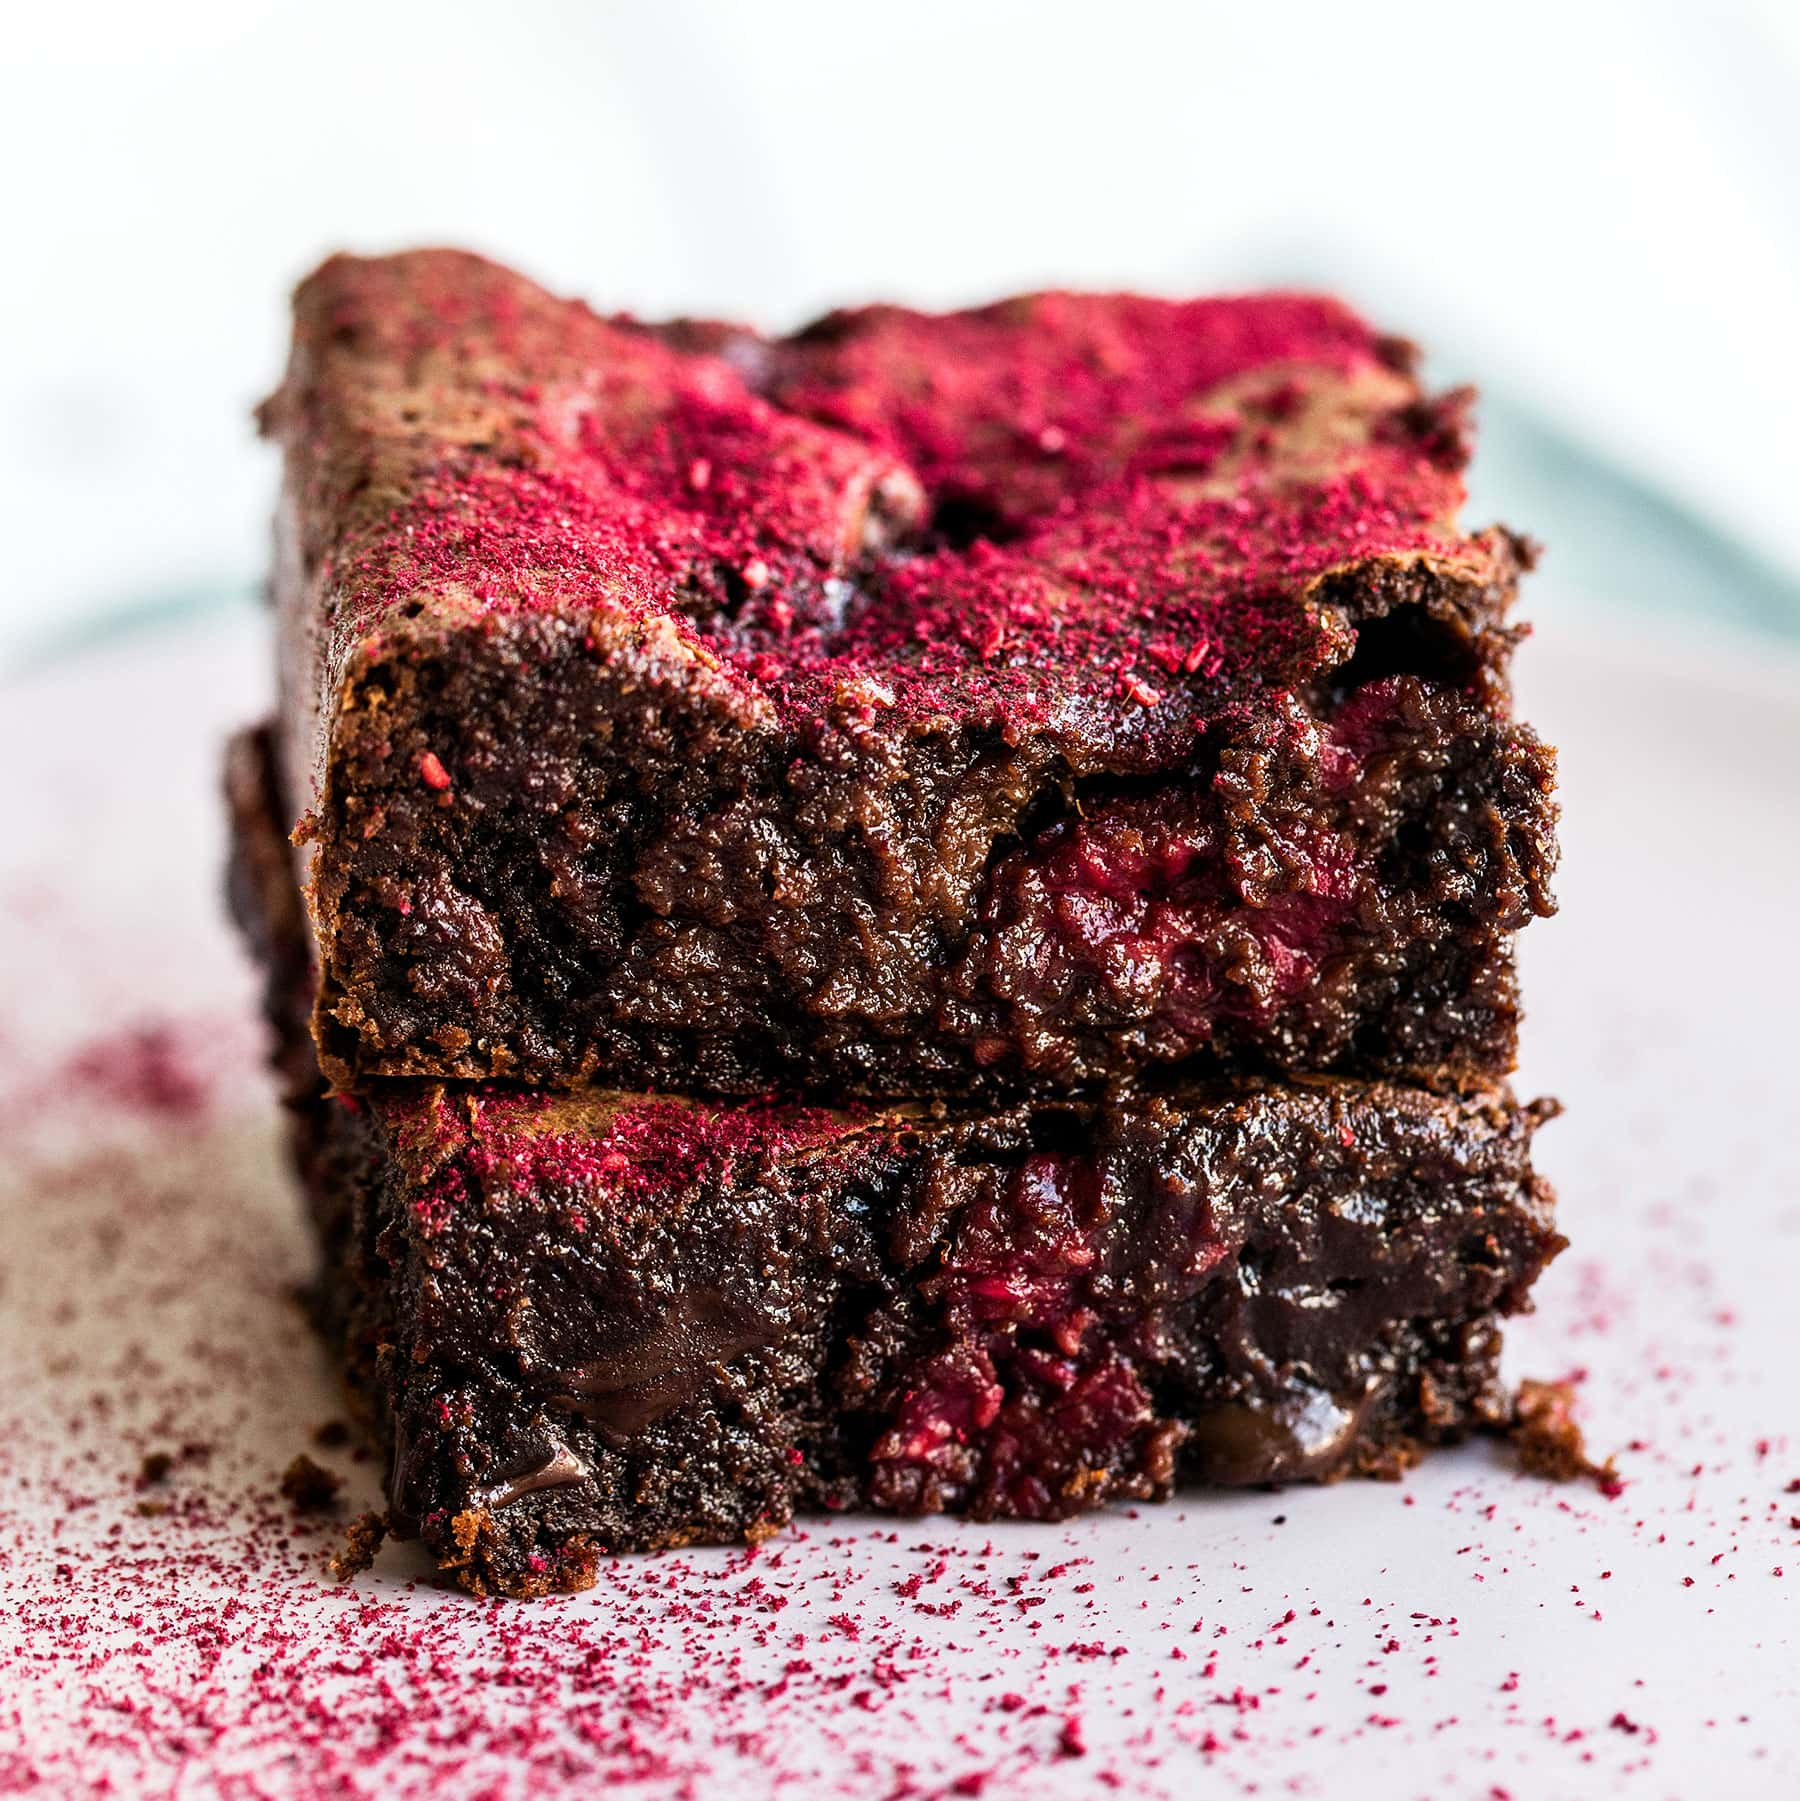 This Raspberry Brownie Recipe is ultra rich and fudgy with gooey chocolate chunks and fresh raspberries studded throughout. A dusting of freeze dried strawberries makes them absolutely beautiful and flavorful!